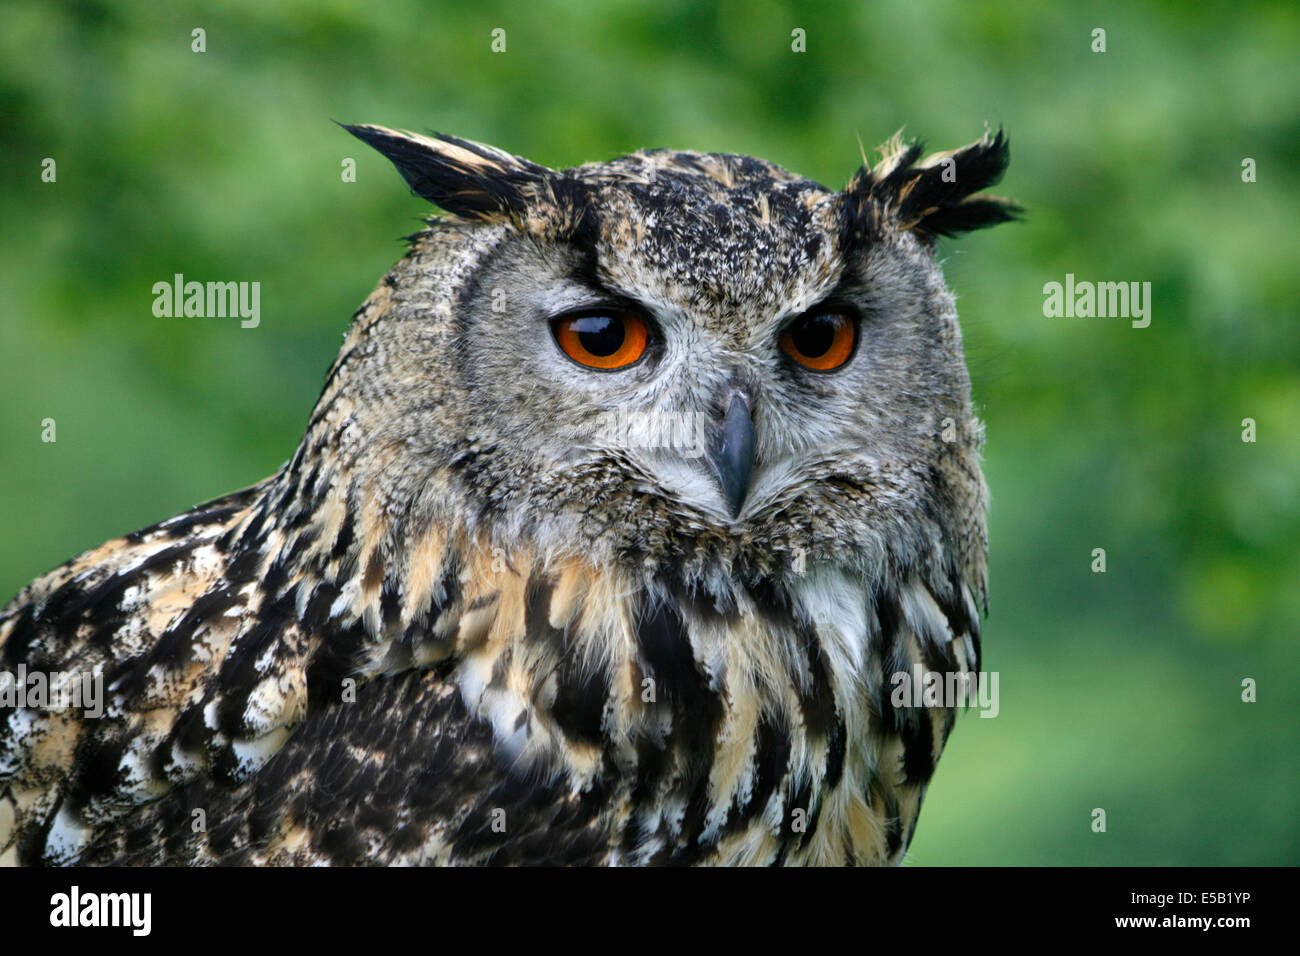 Grand-duc d'Europe (Bubo bubo), prises au Pays de Galles, Royaume-Uni. Photo Stock